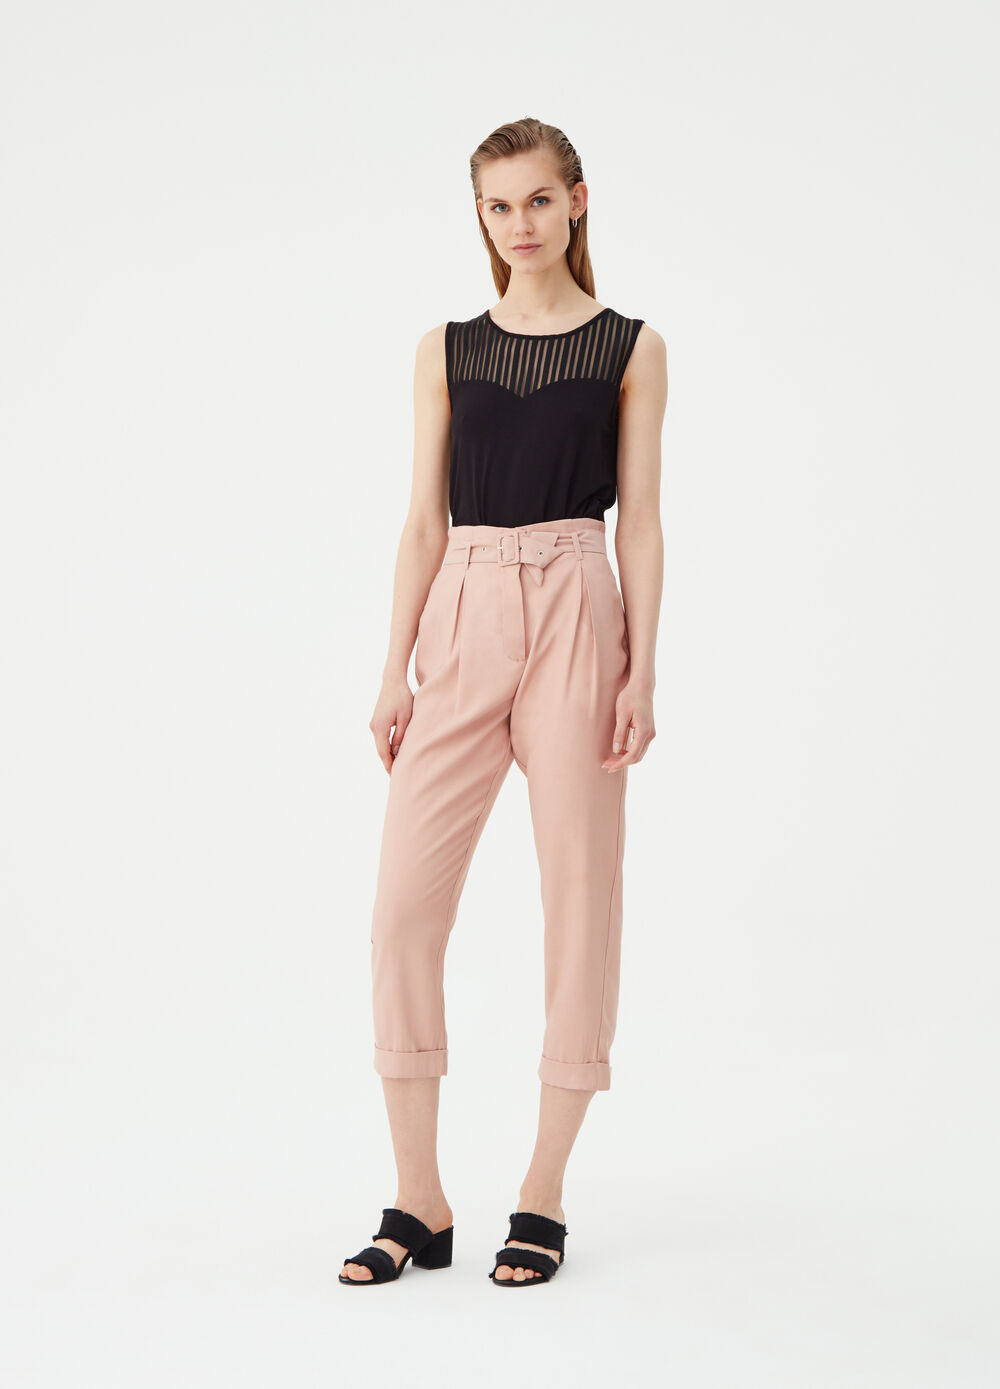 Carrot-fit trousers with belt and buckle